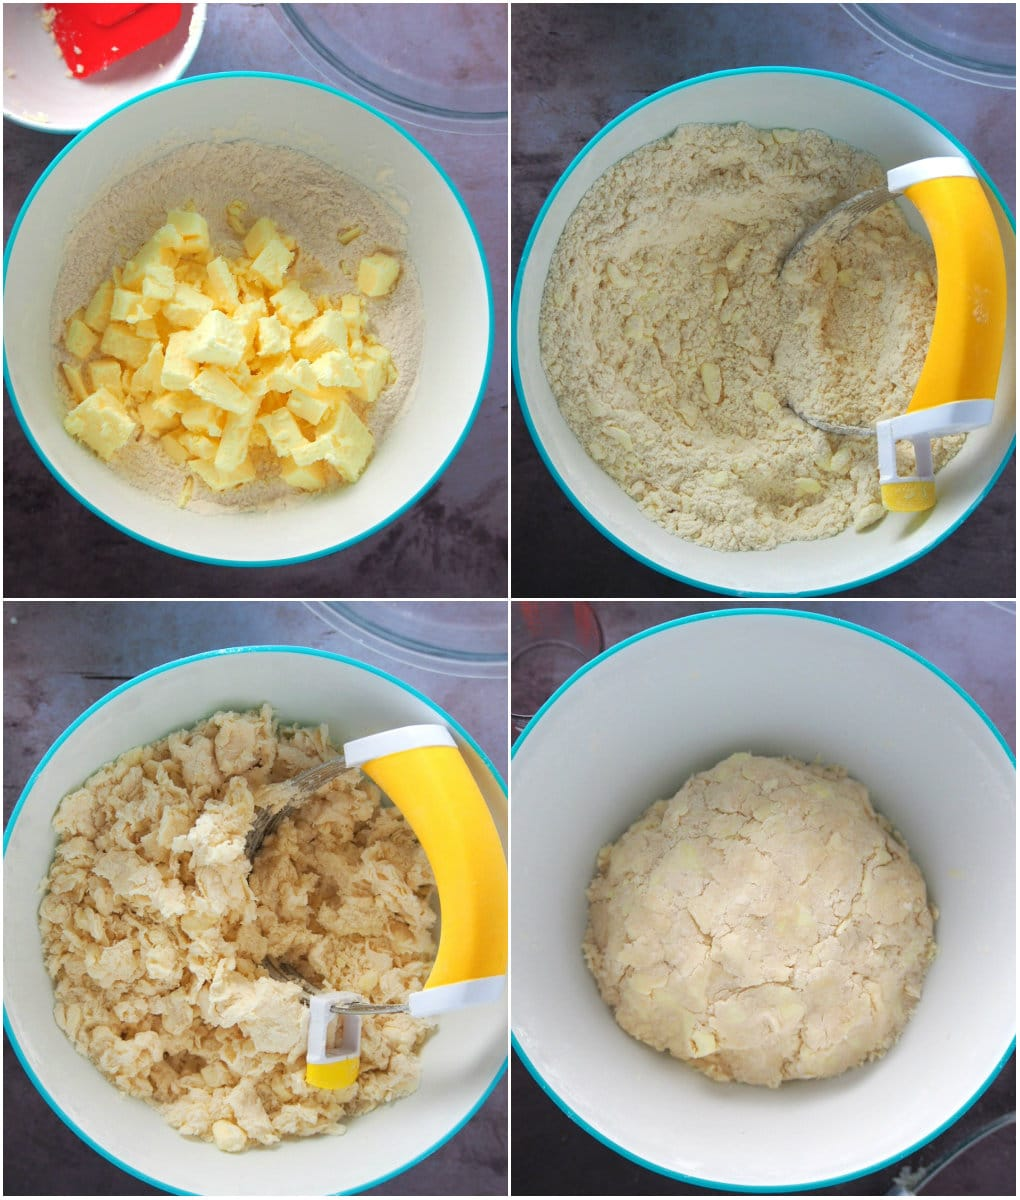 A photo collage showing how to make a pie crust for the Filipino Style Egg Pie.